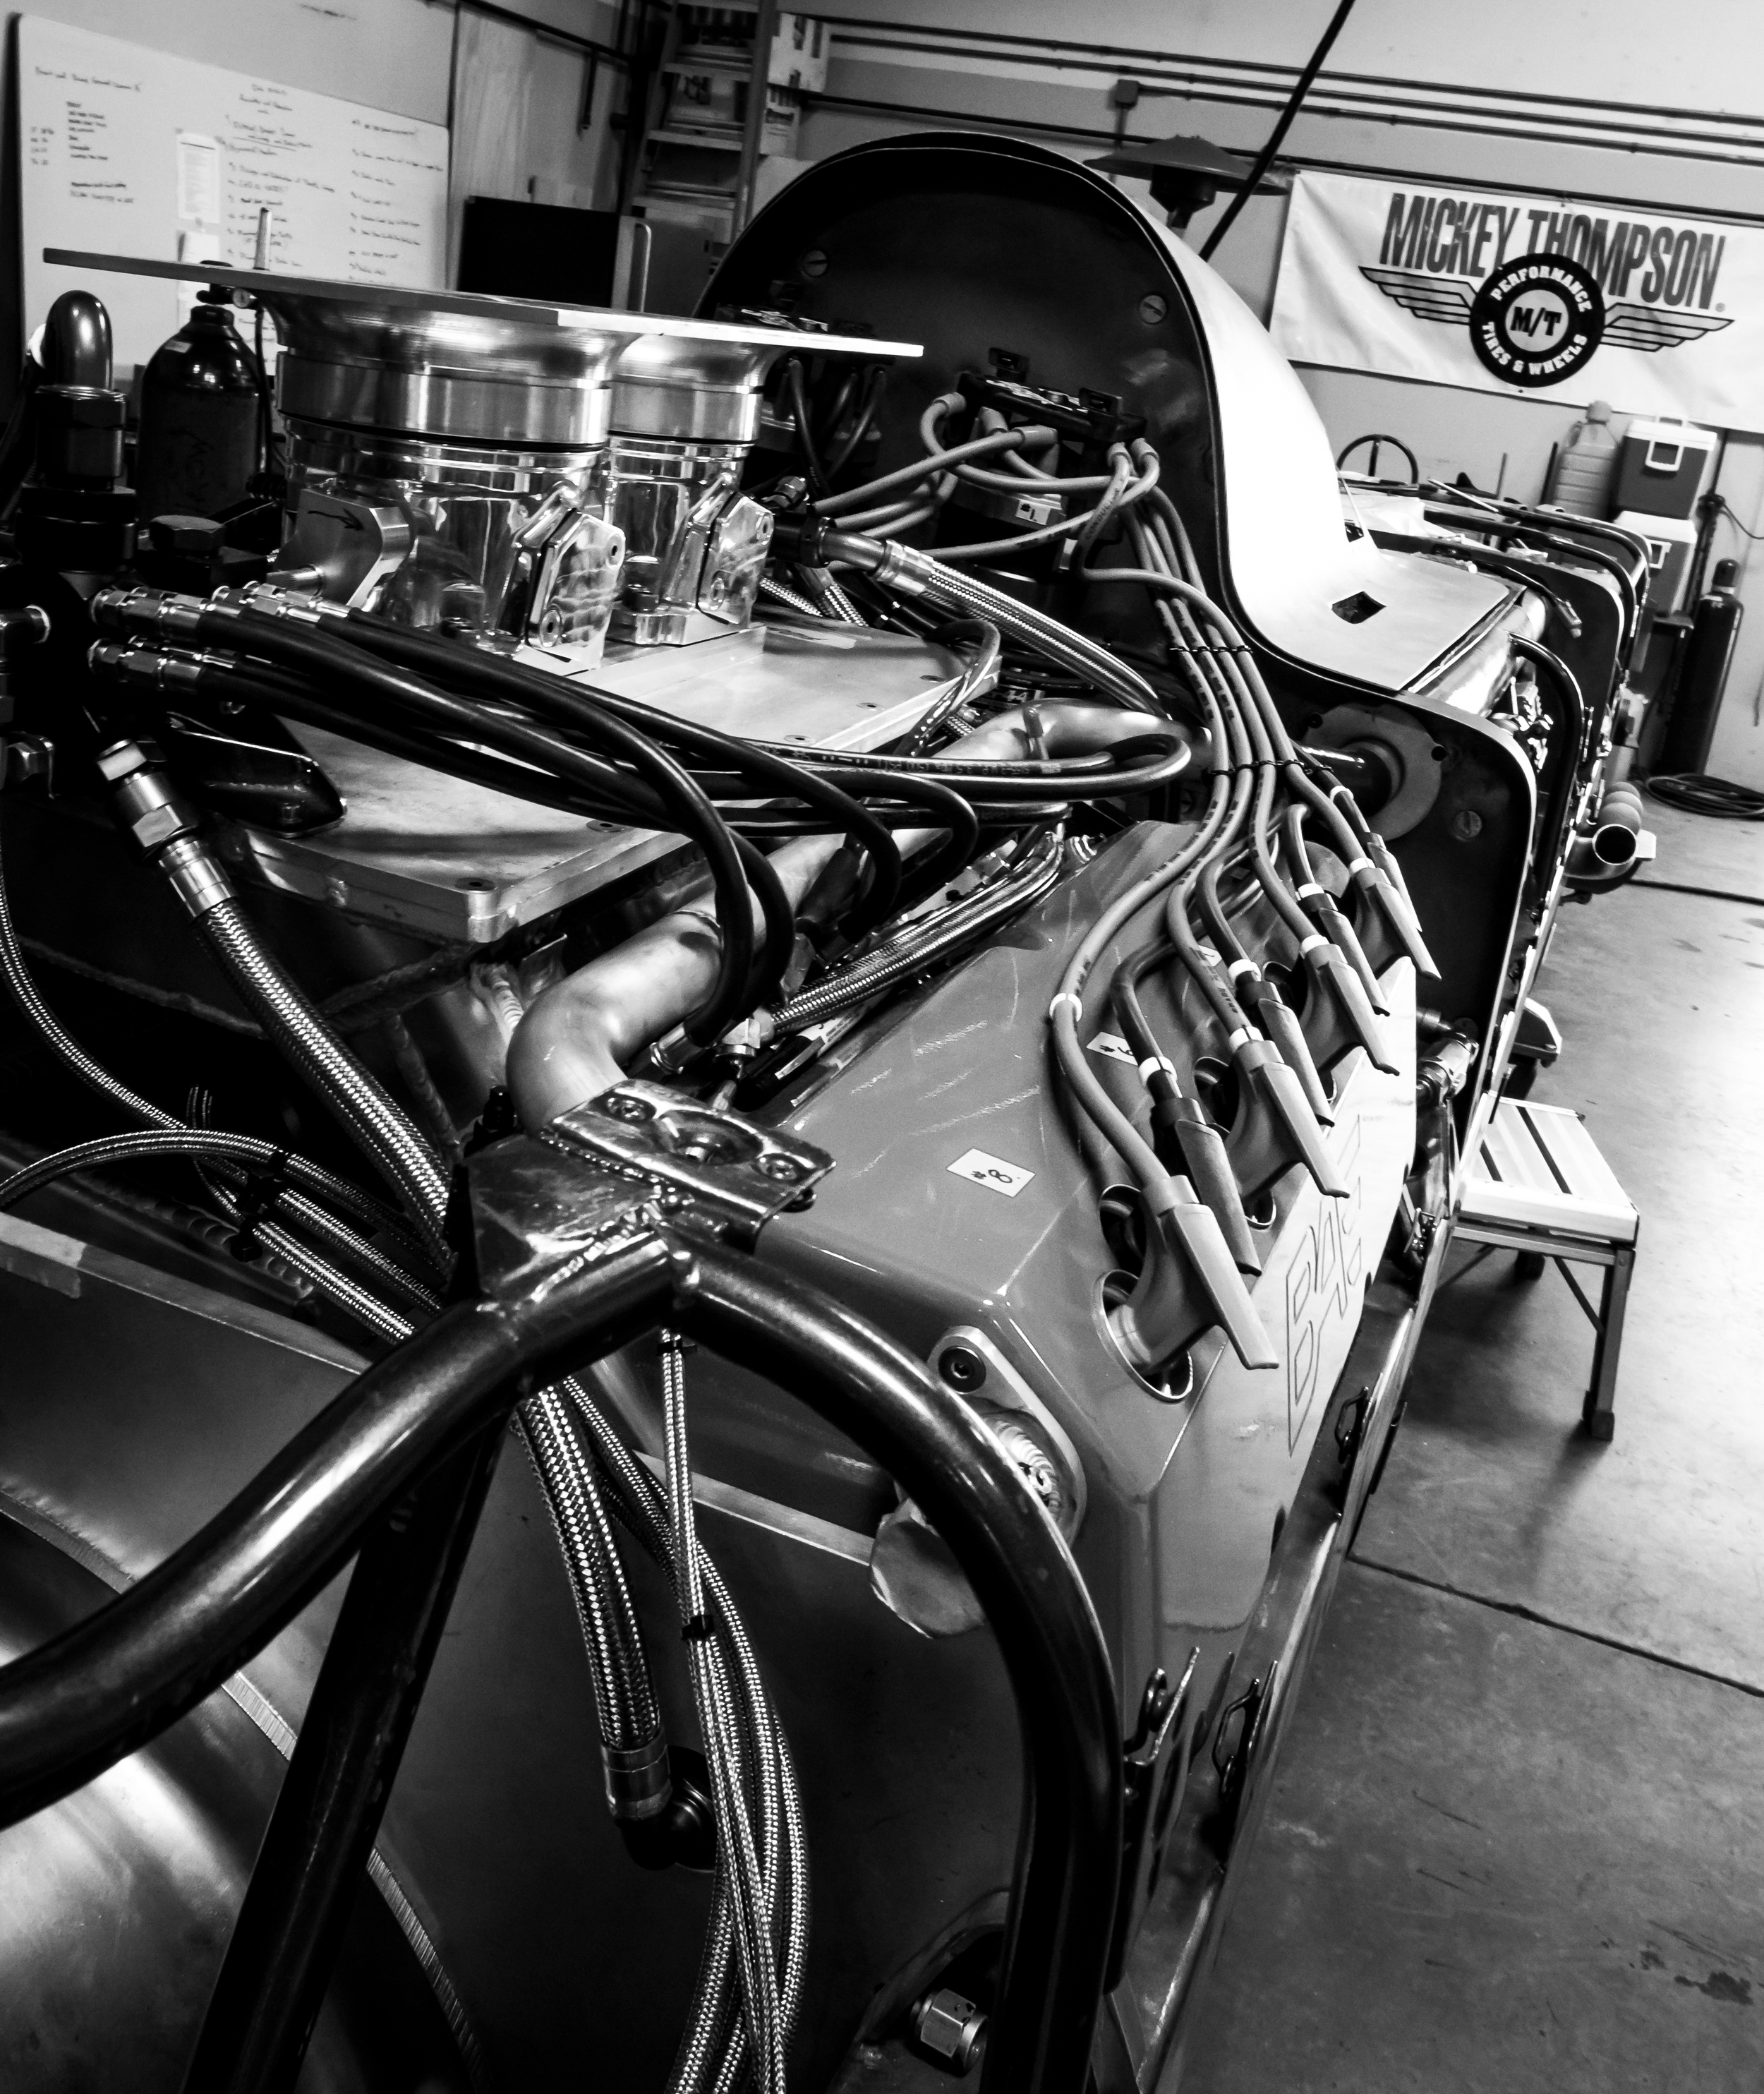 thompsonlsr-challenger ii- metal and speed - images by holly martin-20 (2).jpg